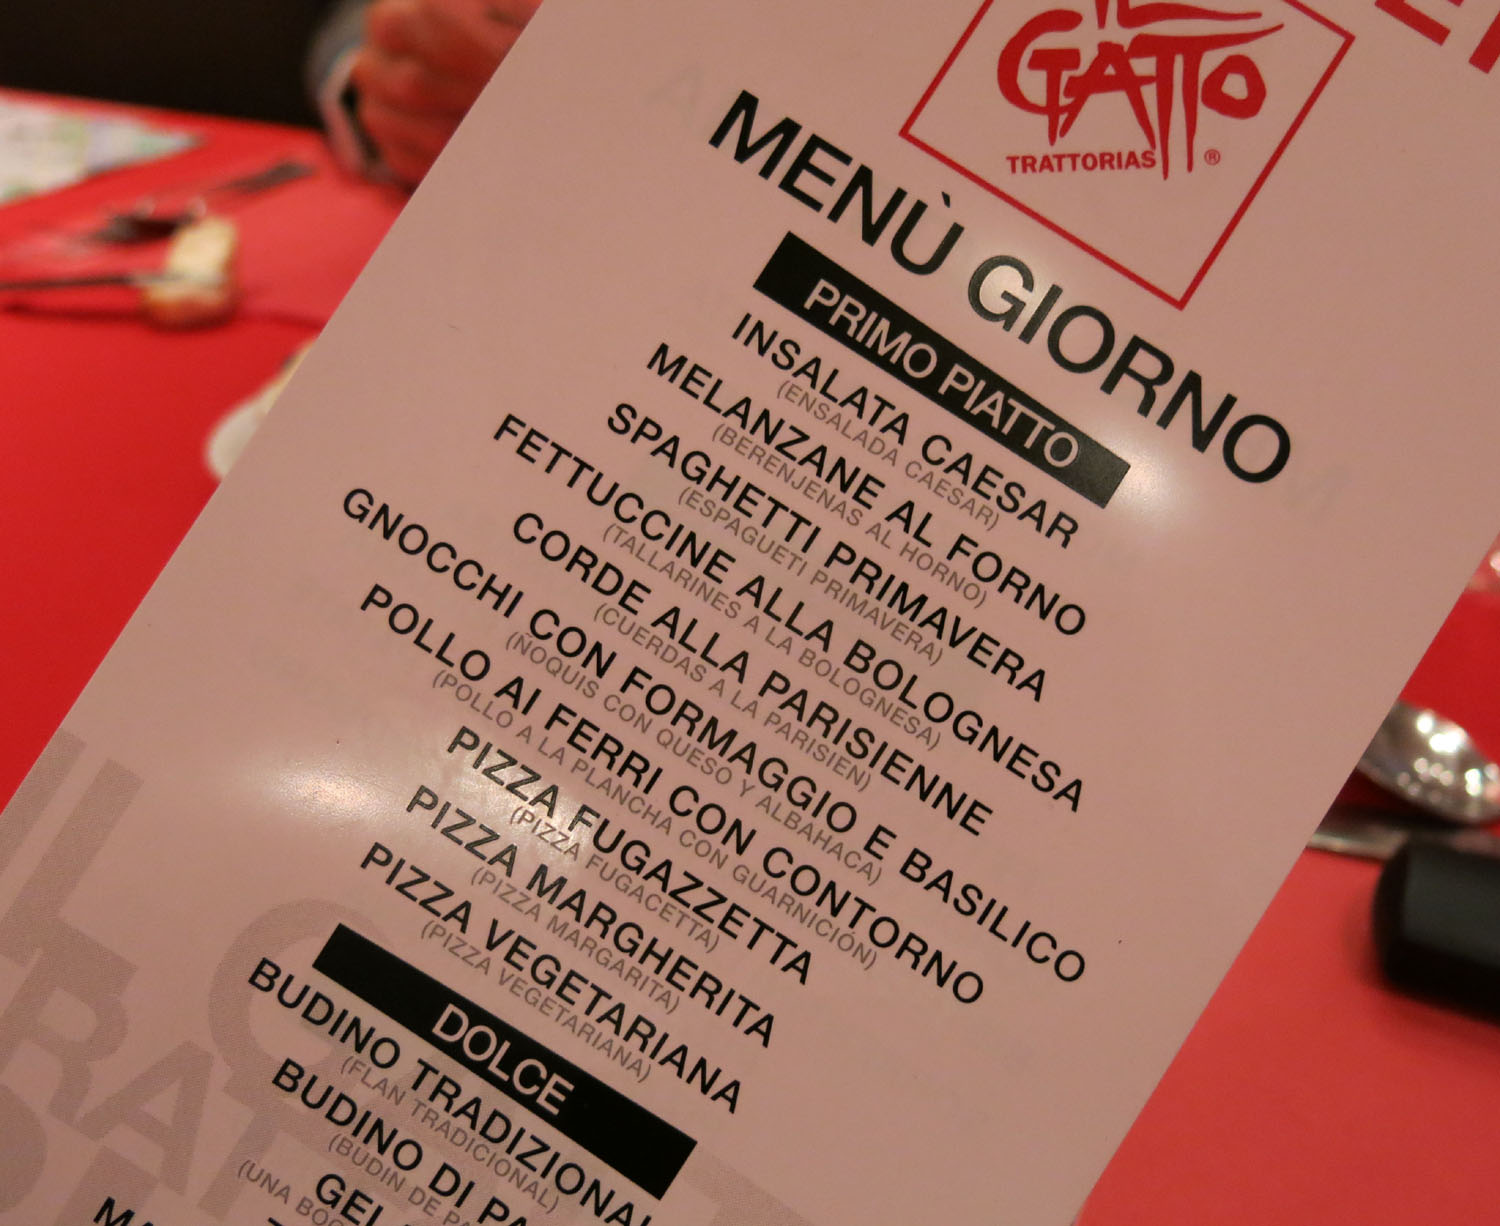 Argentina-Buenos-Aires-Food-And-Drink-Menu